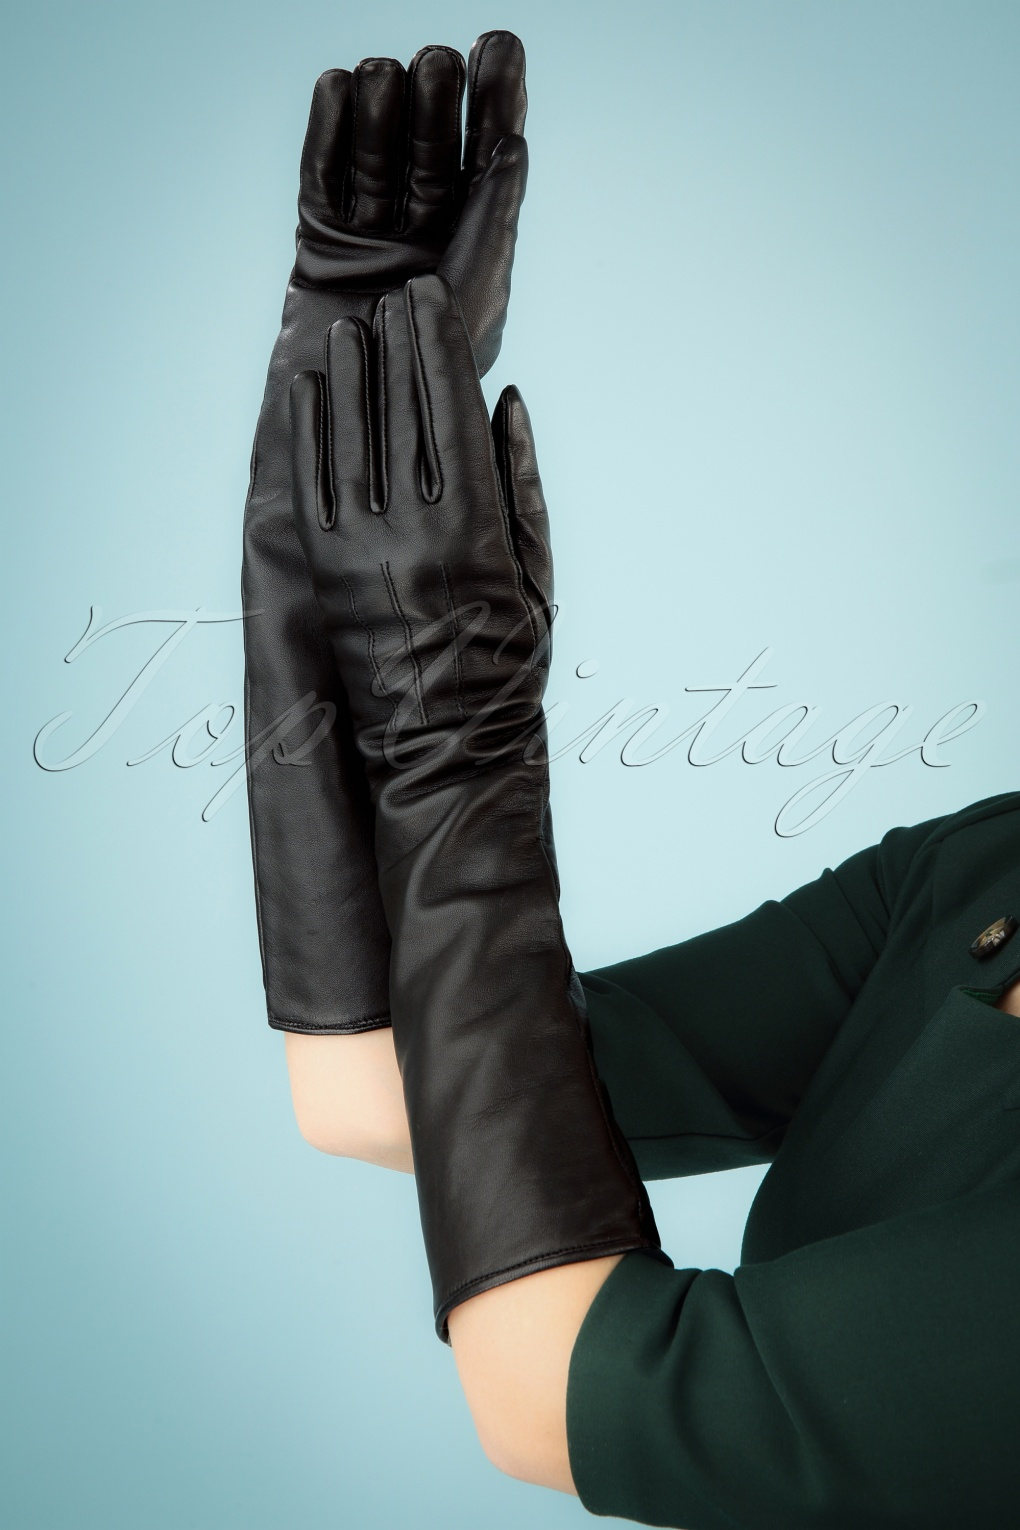 Vintage opera gloves clipart png clipart images gallery for.